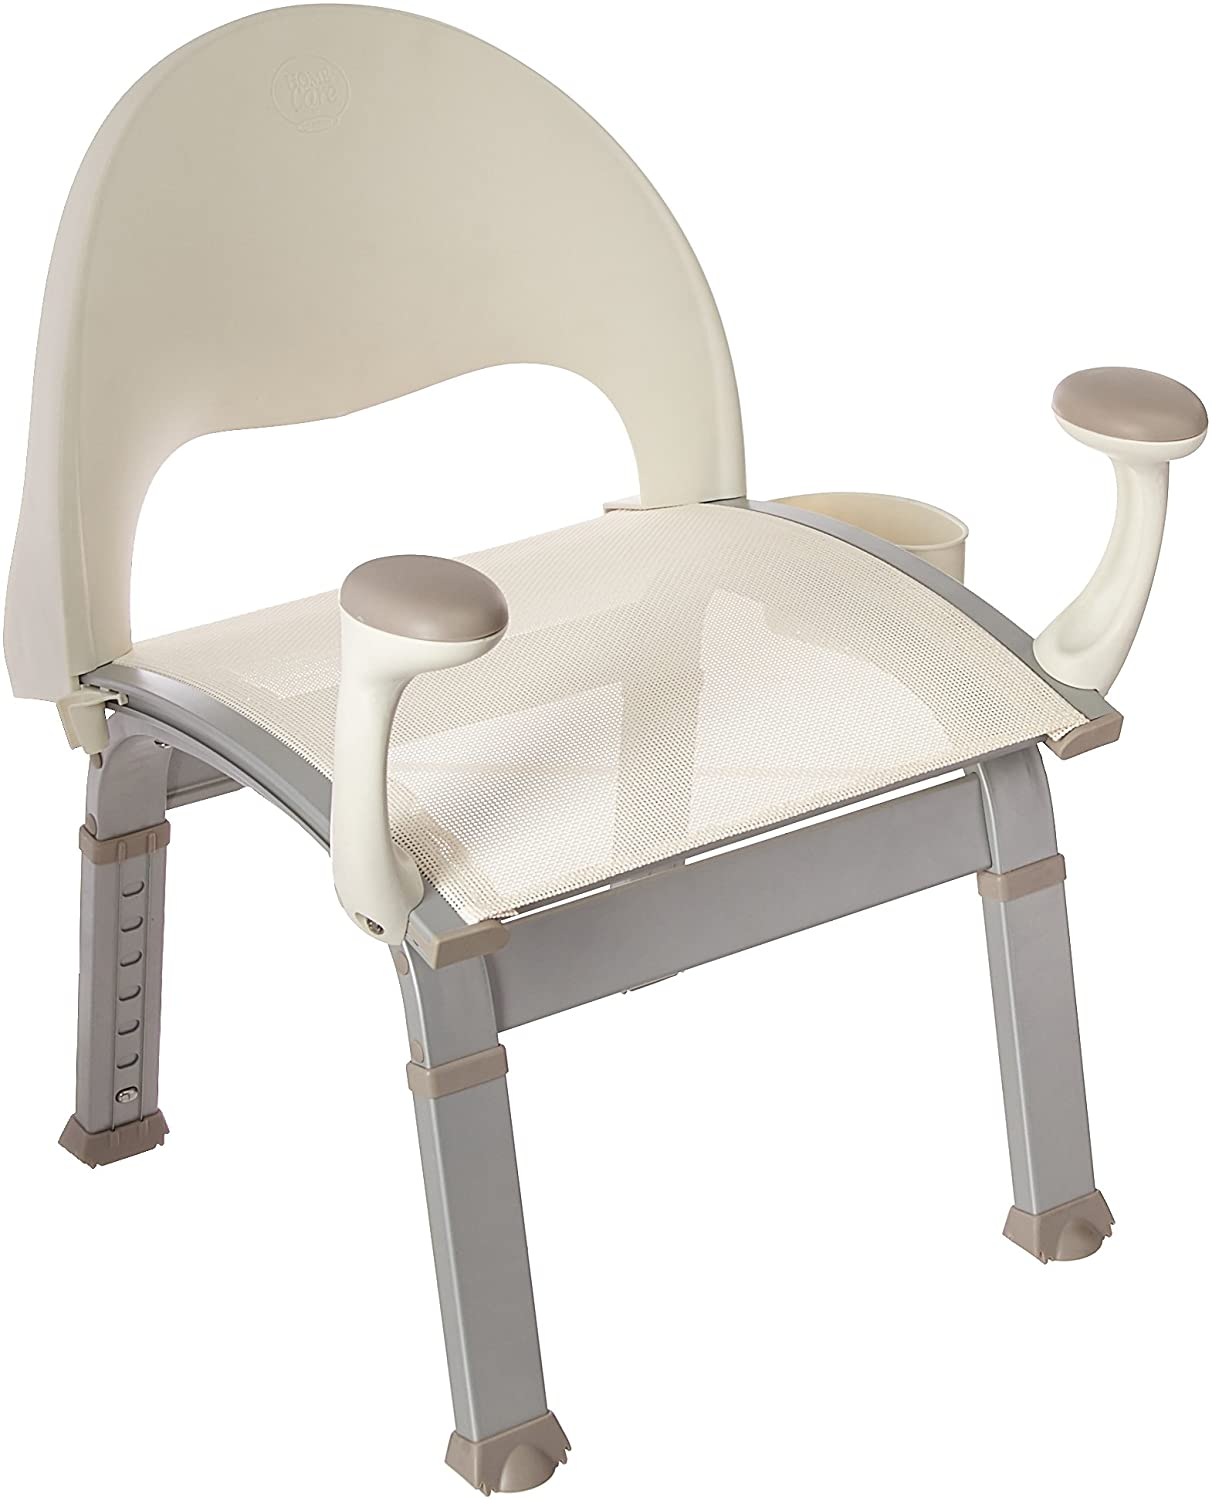 Moen DN7100 Home Care Premium Adjustable Bath Safety Shower Chair with Back and Arm Rests, Glacier 71wzNhxx79LSL1500_